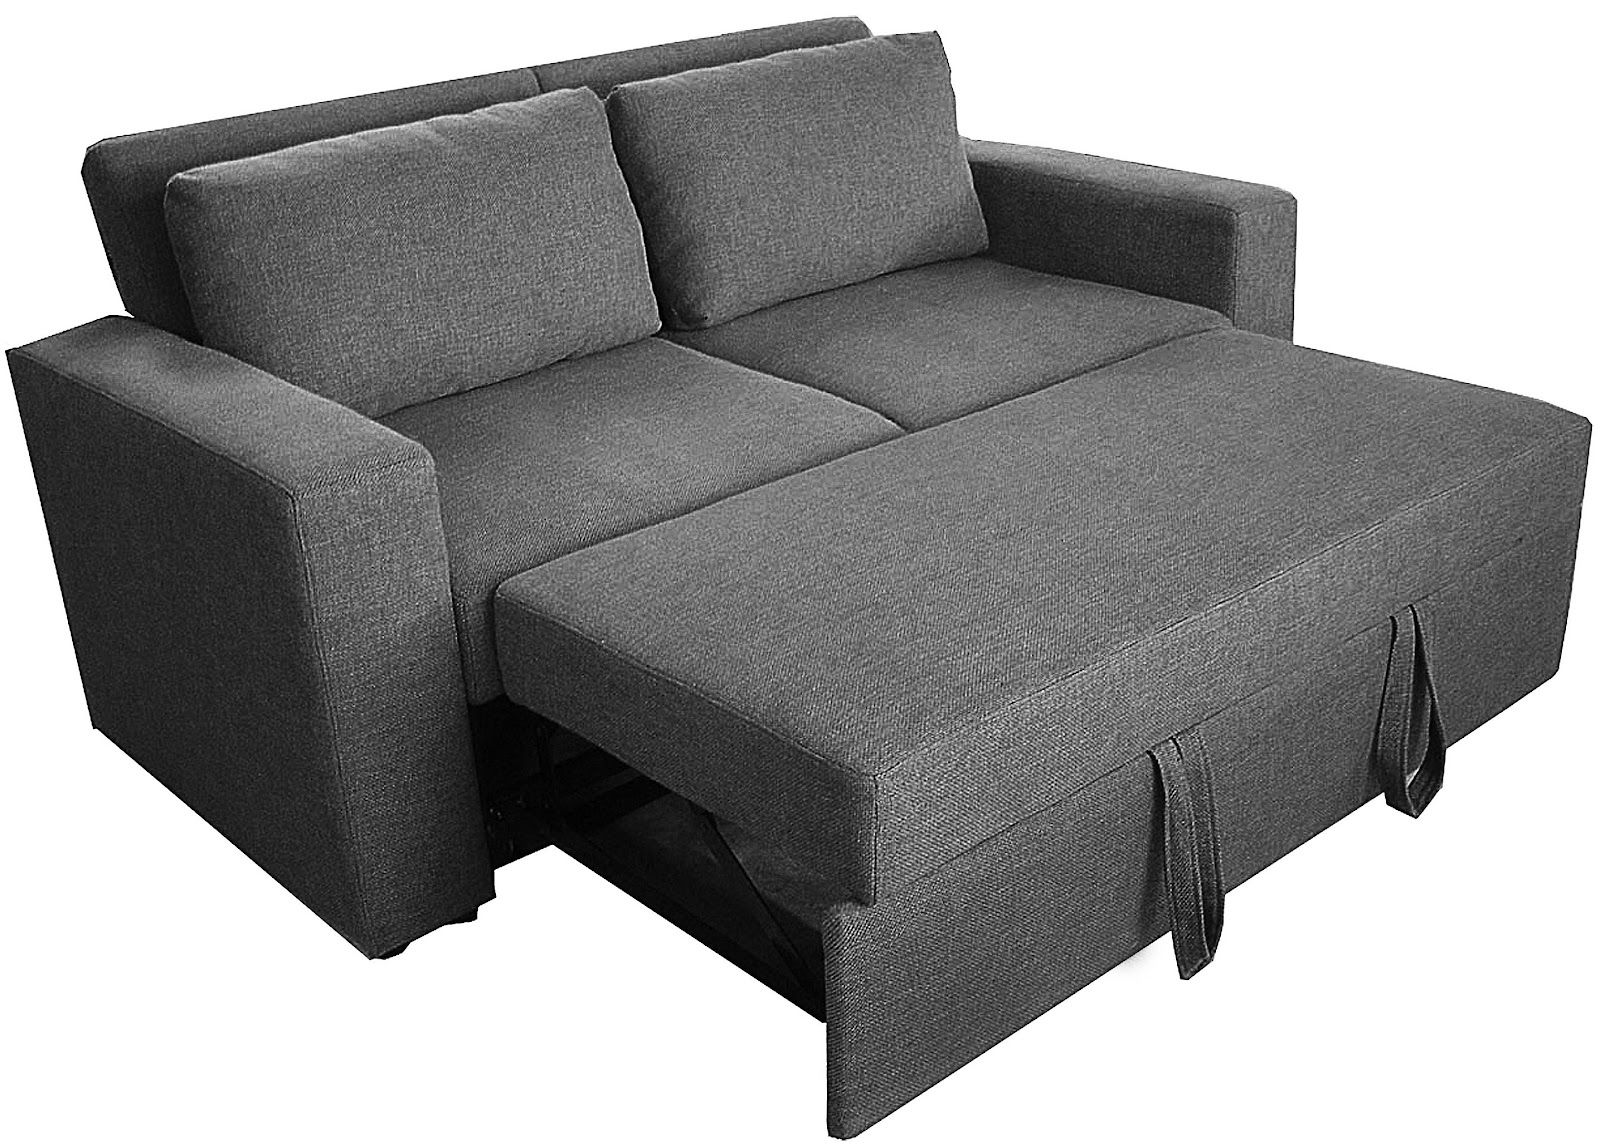 - Pull Out Sleeper Sofa In 2020 Pull Out Sofa Bed, Ikea Sofa Bed